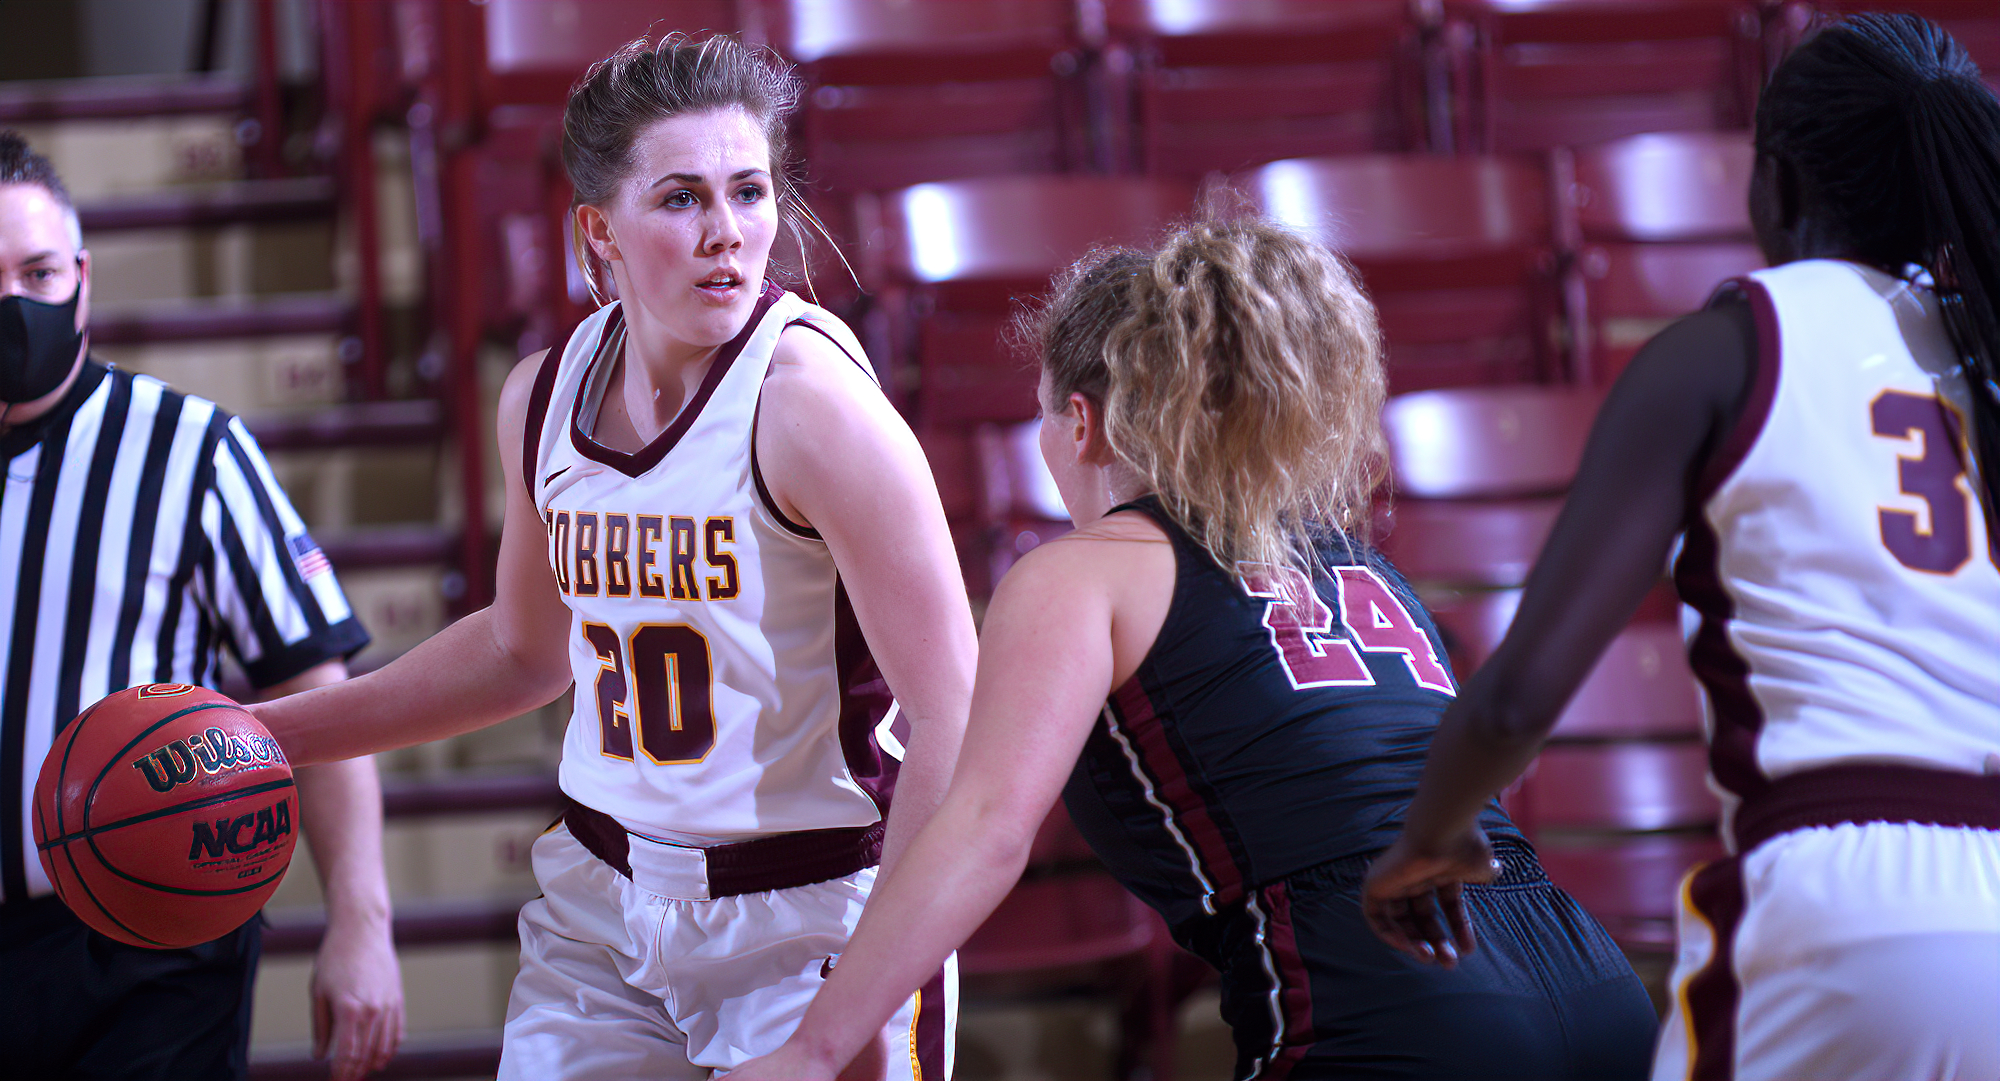 Sophomore Emily Beseman had a game-high 22 points and grabbed a team-high eight rebounds to help Concordia beat St. Ben's 71-62 in the season finale.